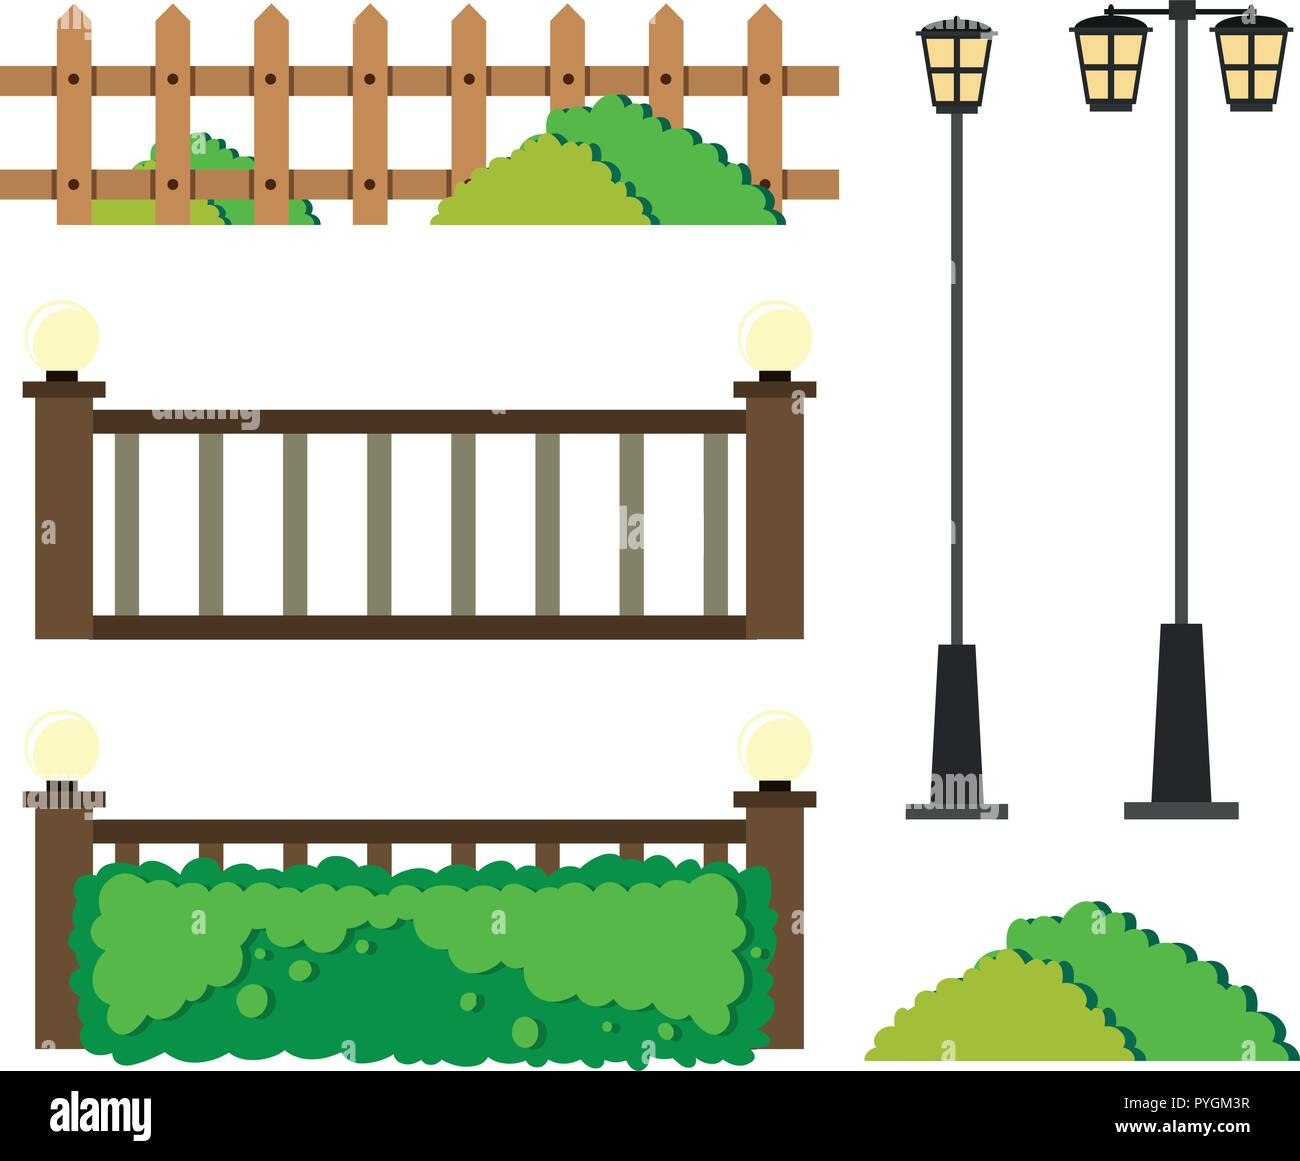 Fences and lamp posts illustration - Stock Vector